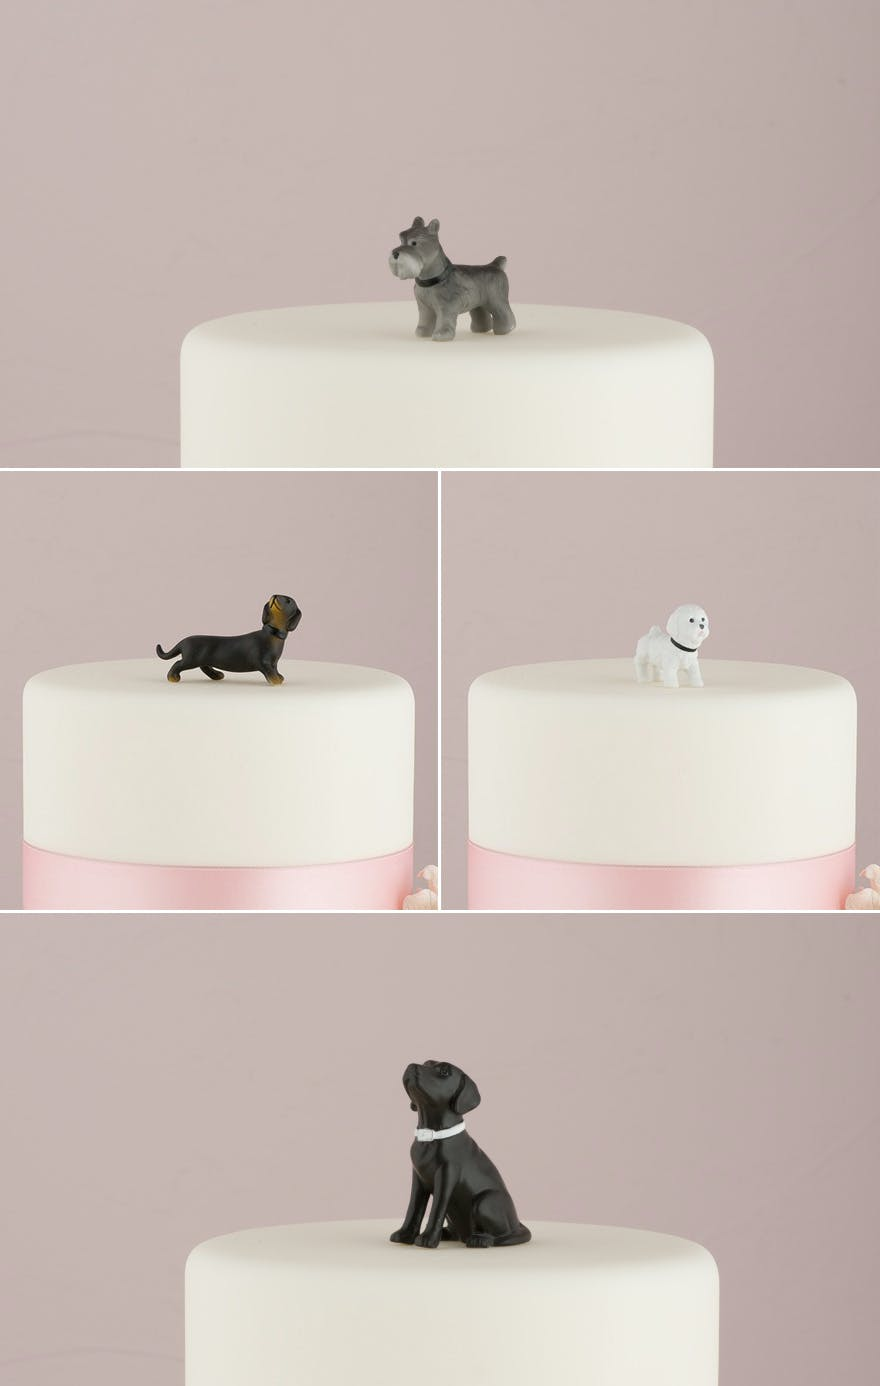 Pet Cake Toppers - Dog Cake Toppers - Miniature Terrier Dog Figurine, Labrador Figurine, Black and Tan Dachshund Figurine, and Bichon Frise Figurines   Confetti.co.uk